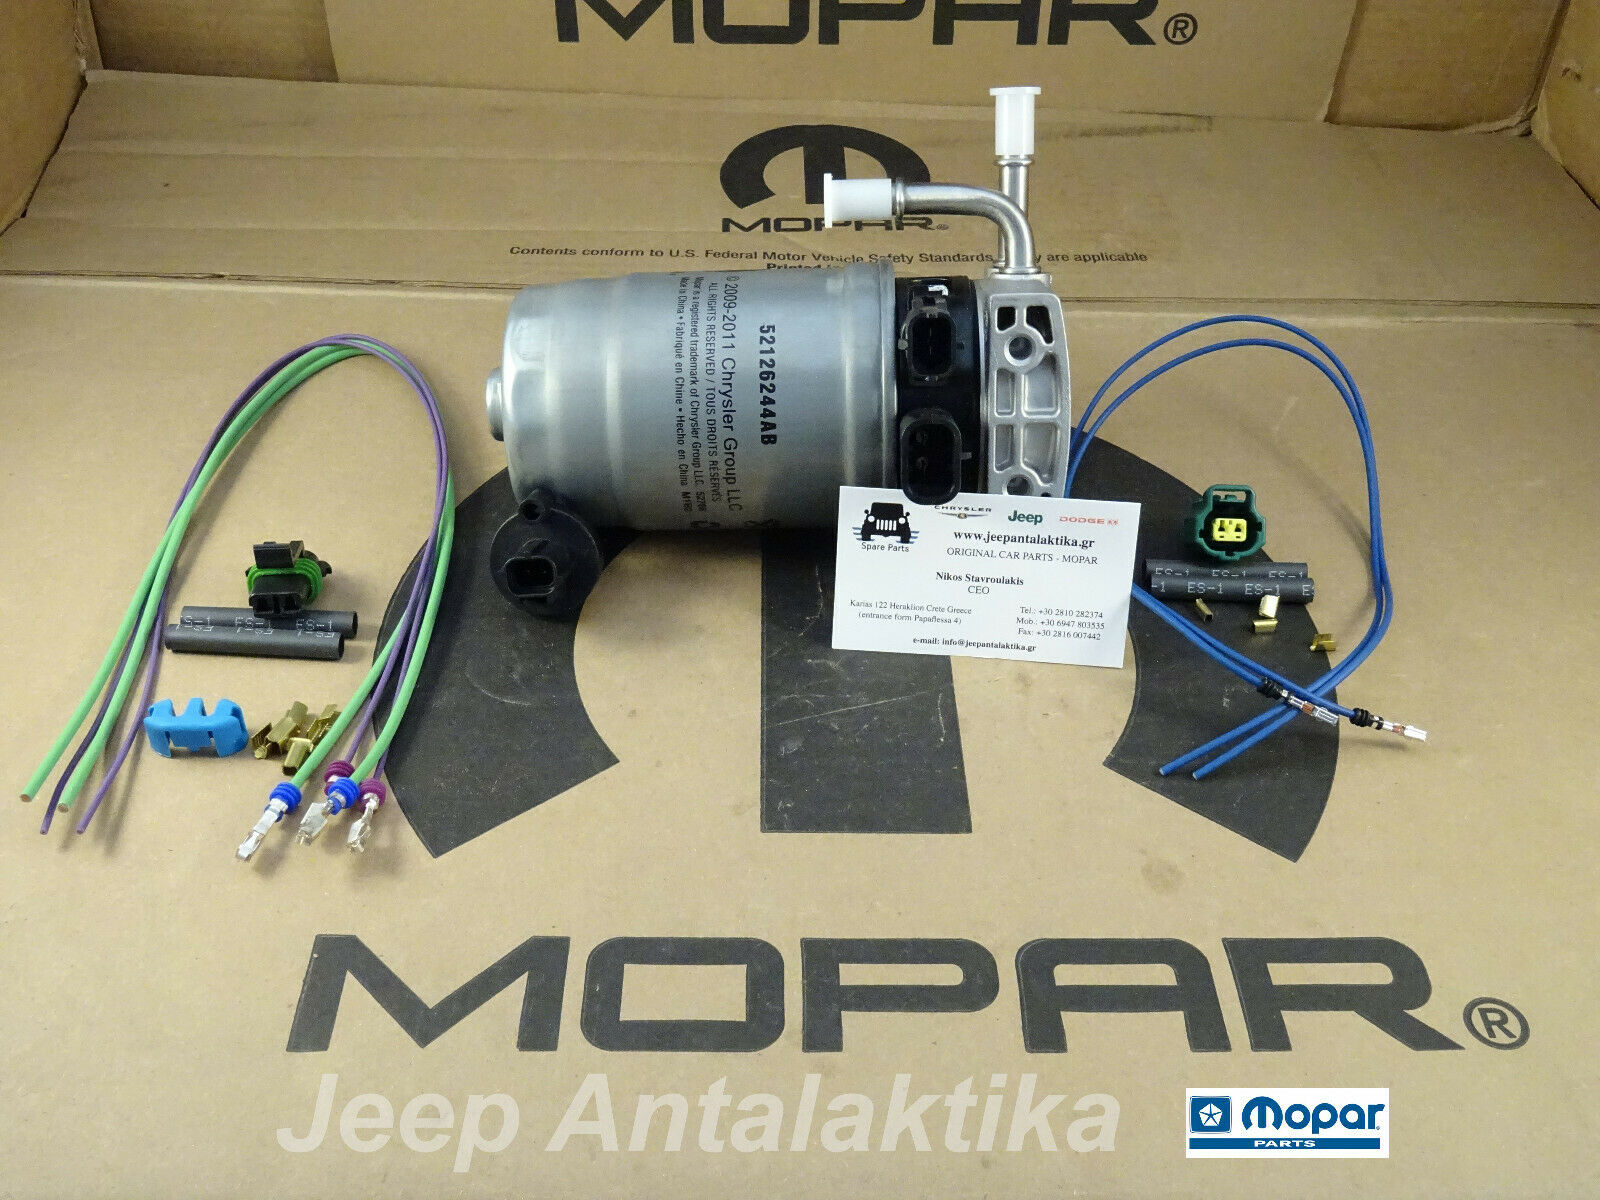 Details about Fuel/Water Separator +2 Wiring kits + Sensor Jeep Wrangler on